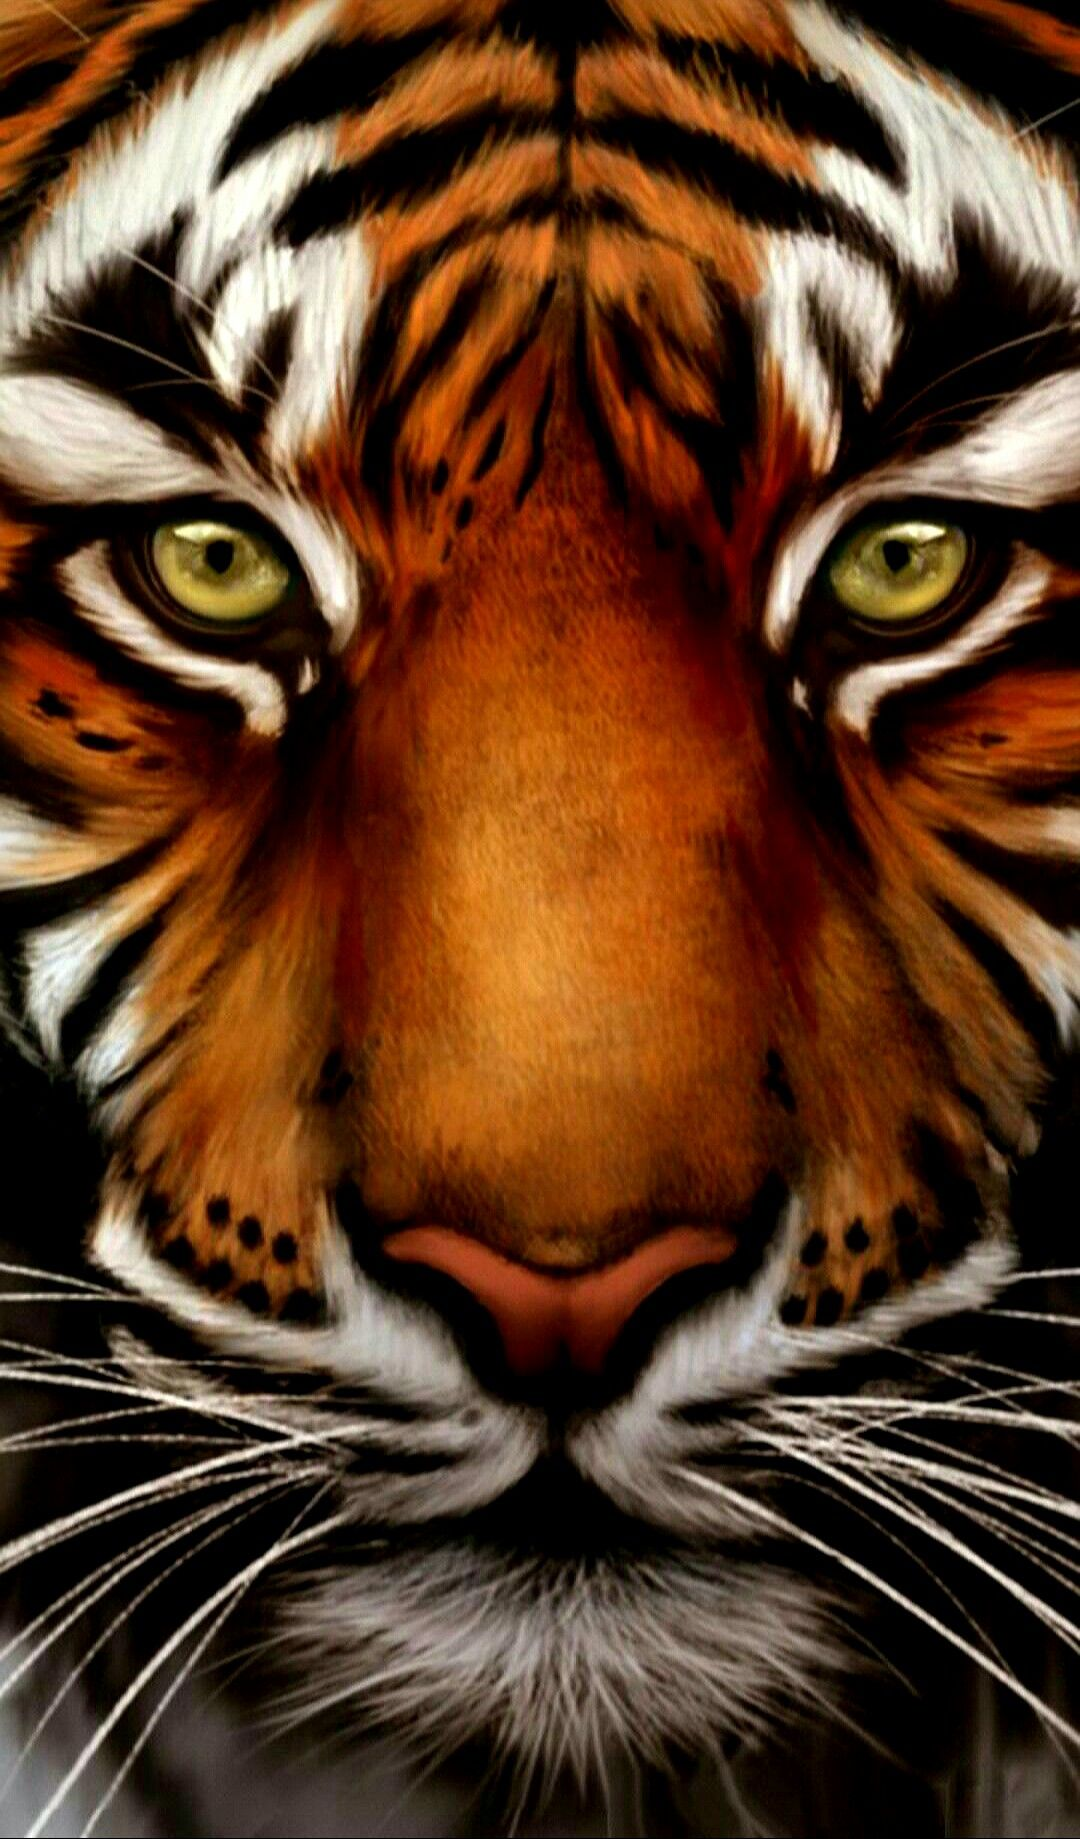 Popular Wallpaper Mobile Tiger - d3350fd7a8b5cbcabb828cf06e68b800  2018_101734.jpg